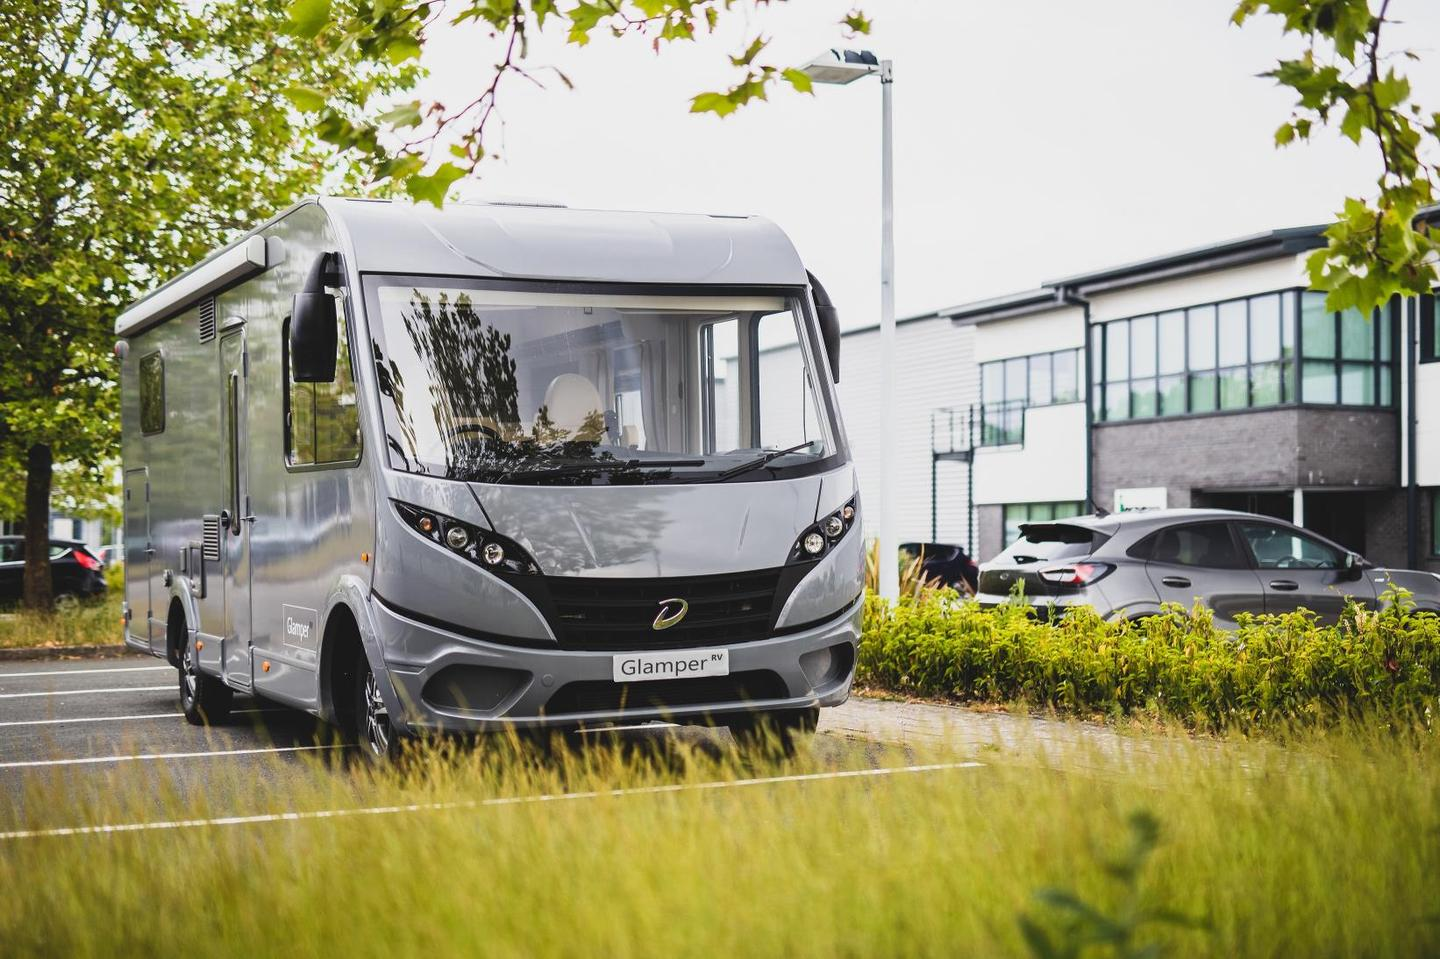 GlamperRV addresses the COVID-19 world with a new line of business/leisure motorhomes